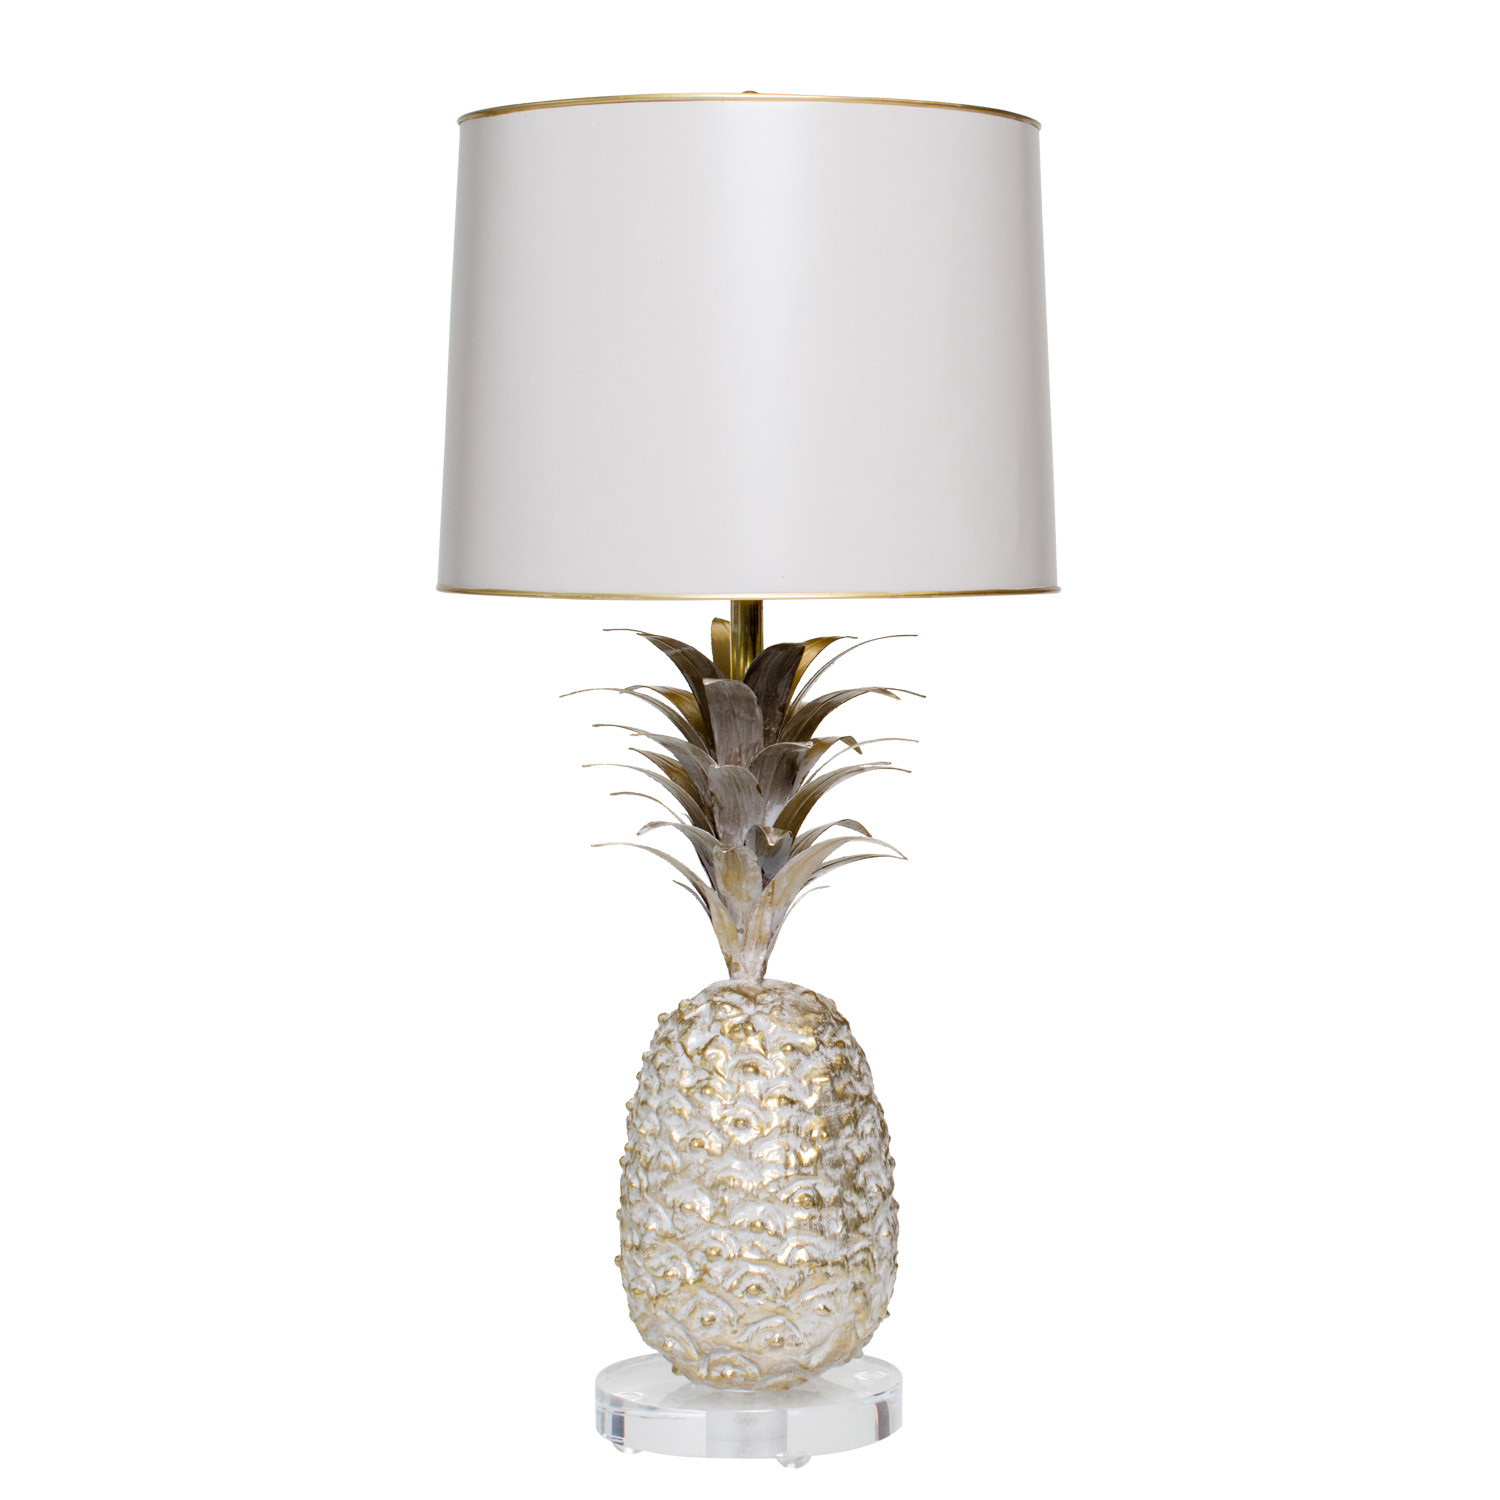 10 Facts About Pineapple Lamps Warisan Lighting